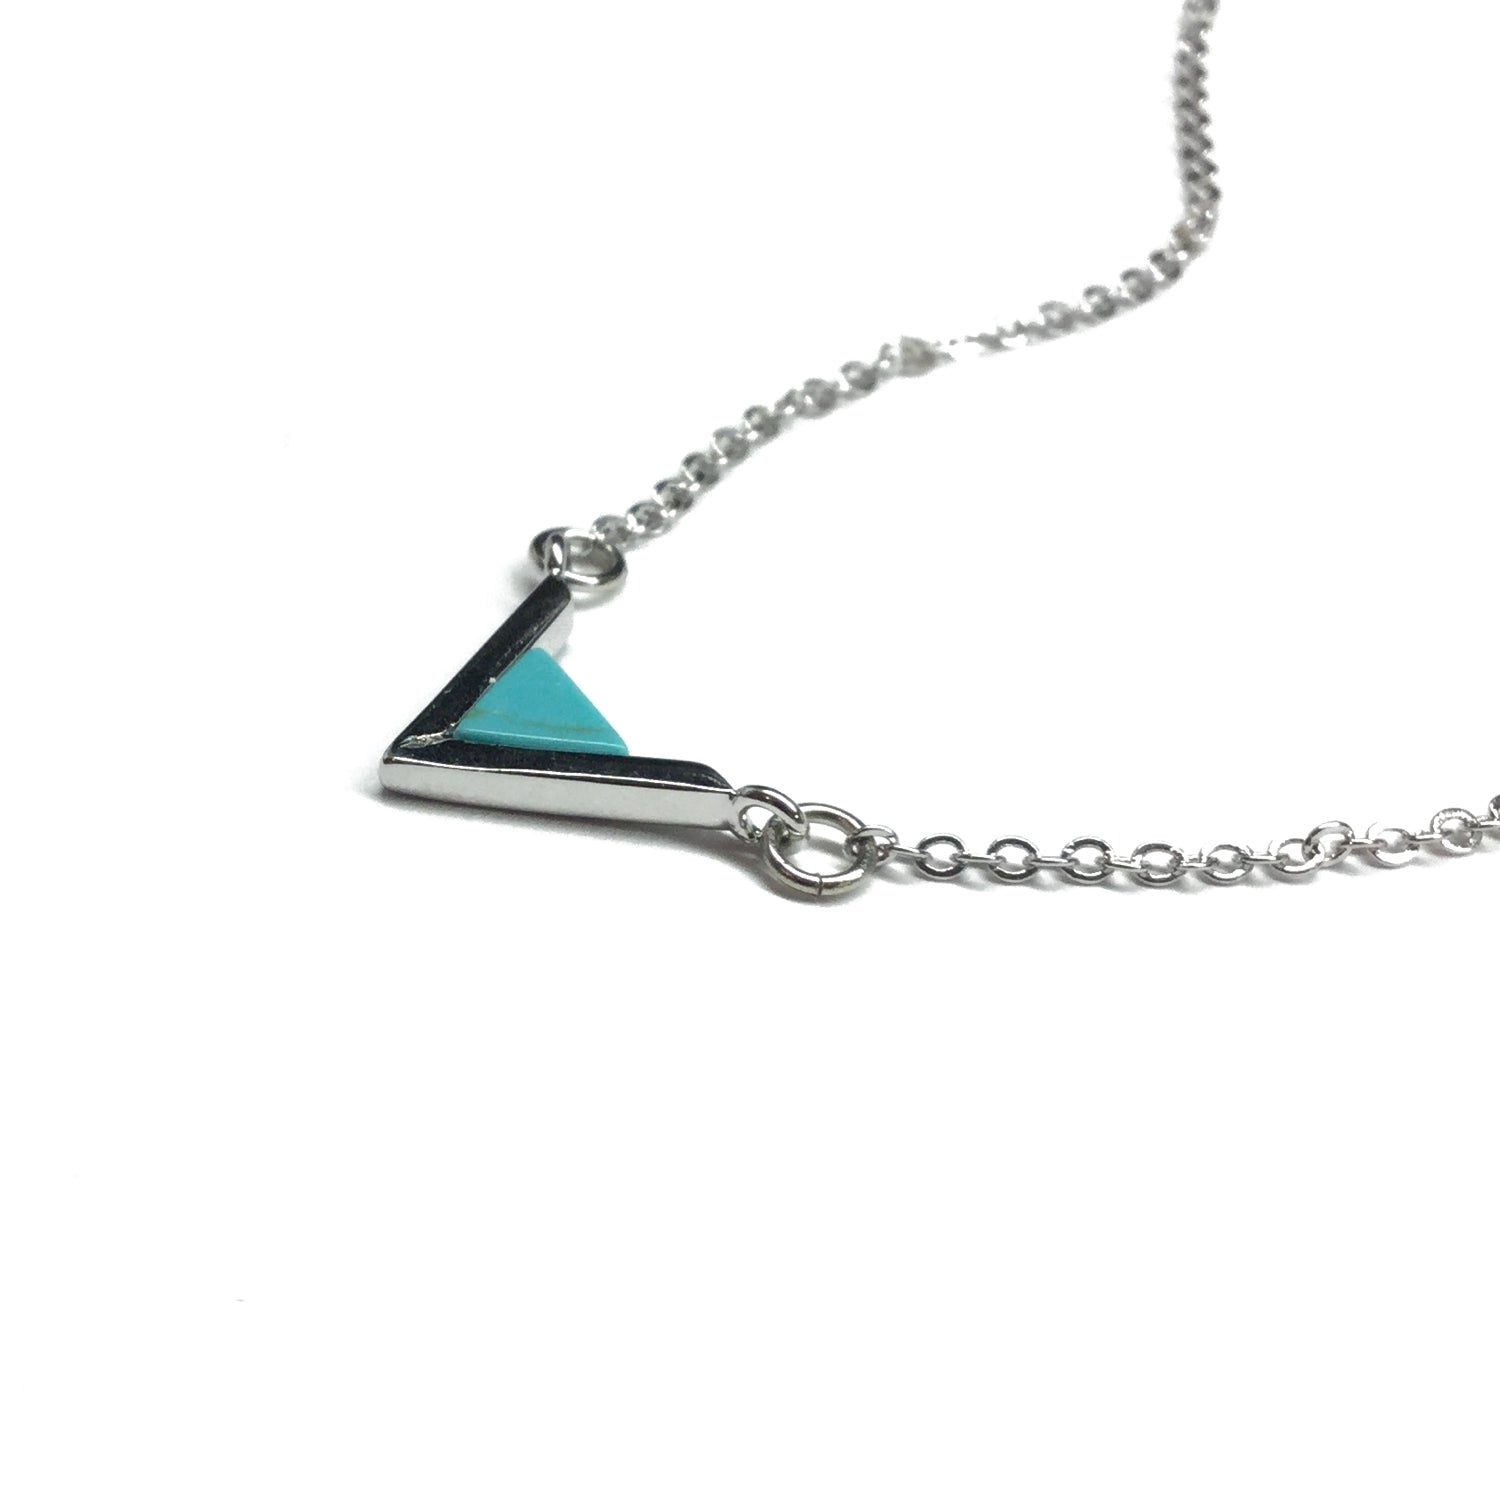 Silver plated turquoise howlite geometric triangle necklace